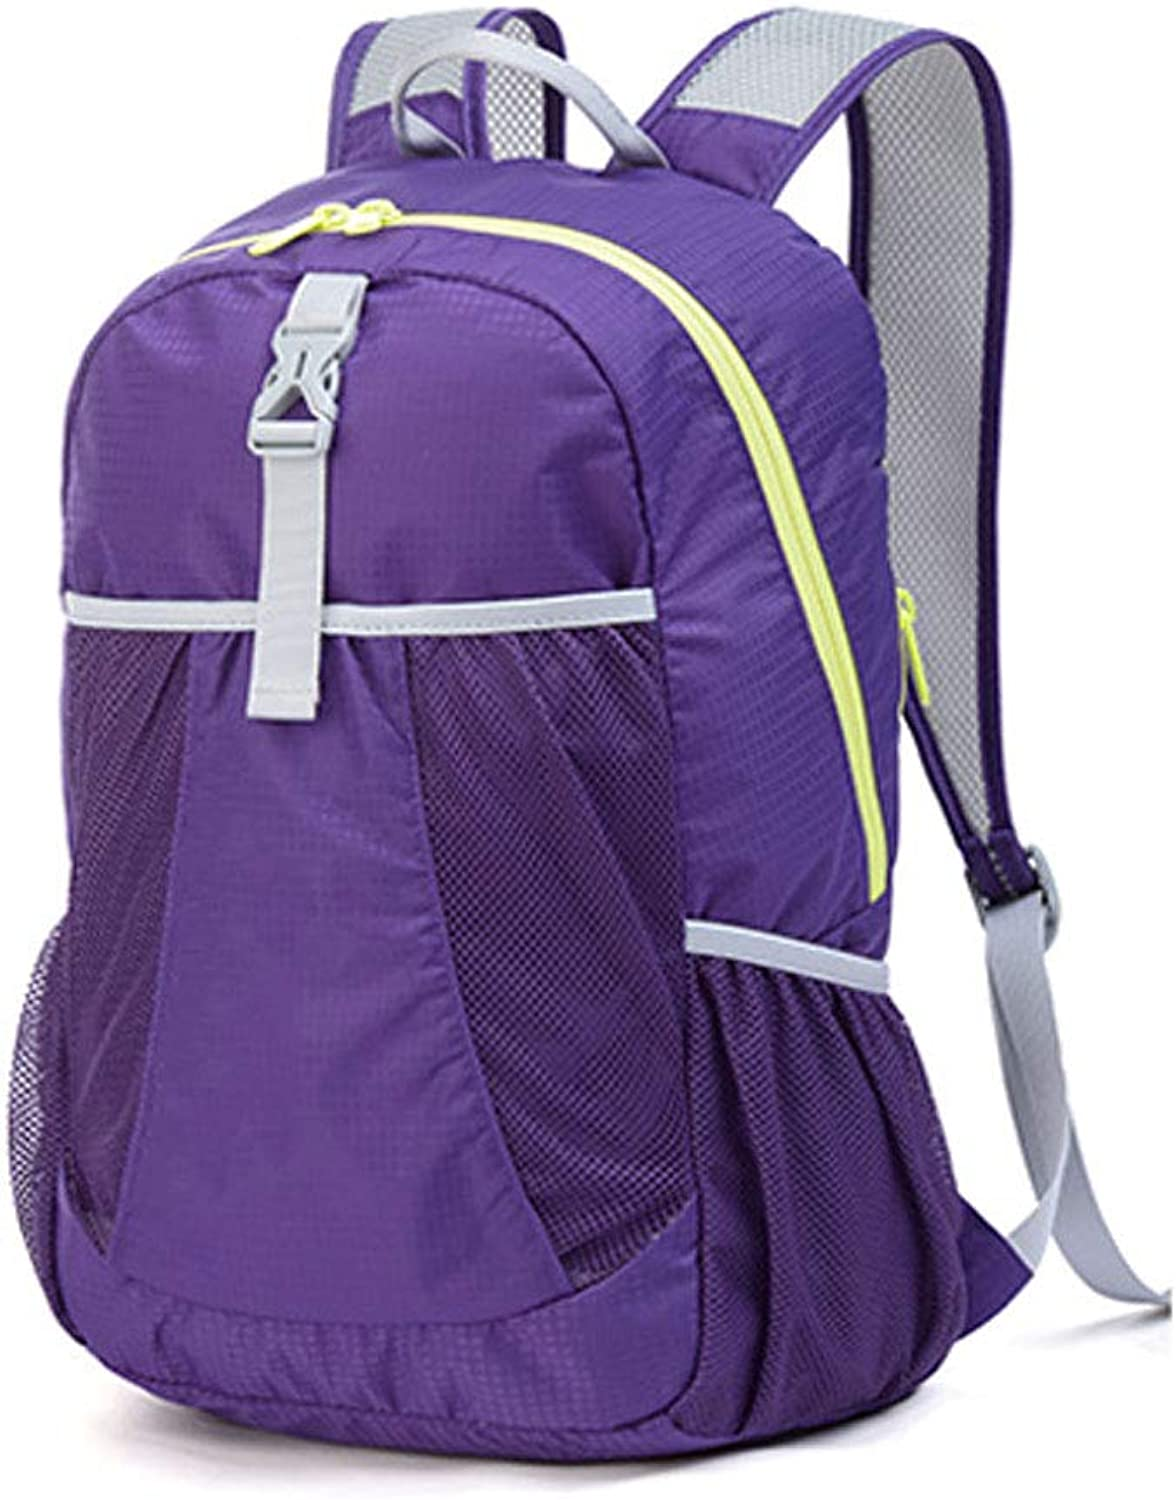 Outdoor Backpack Hiking Backpack Waterproof Mountaineering Folding Ultralight Men and Women Available Purple 22l